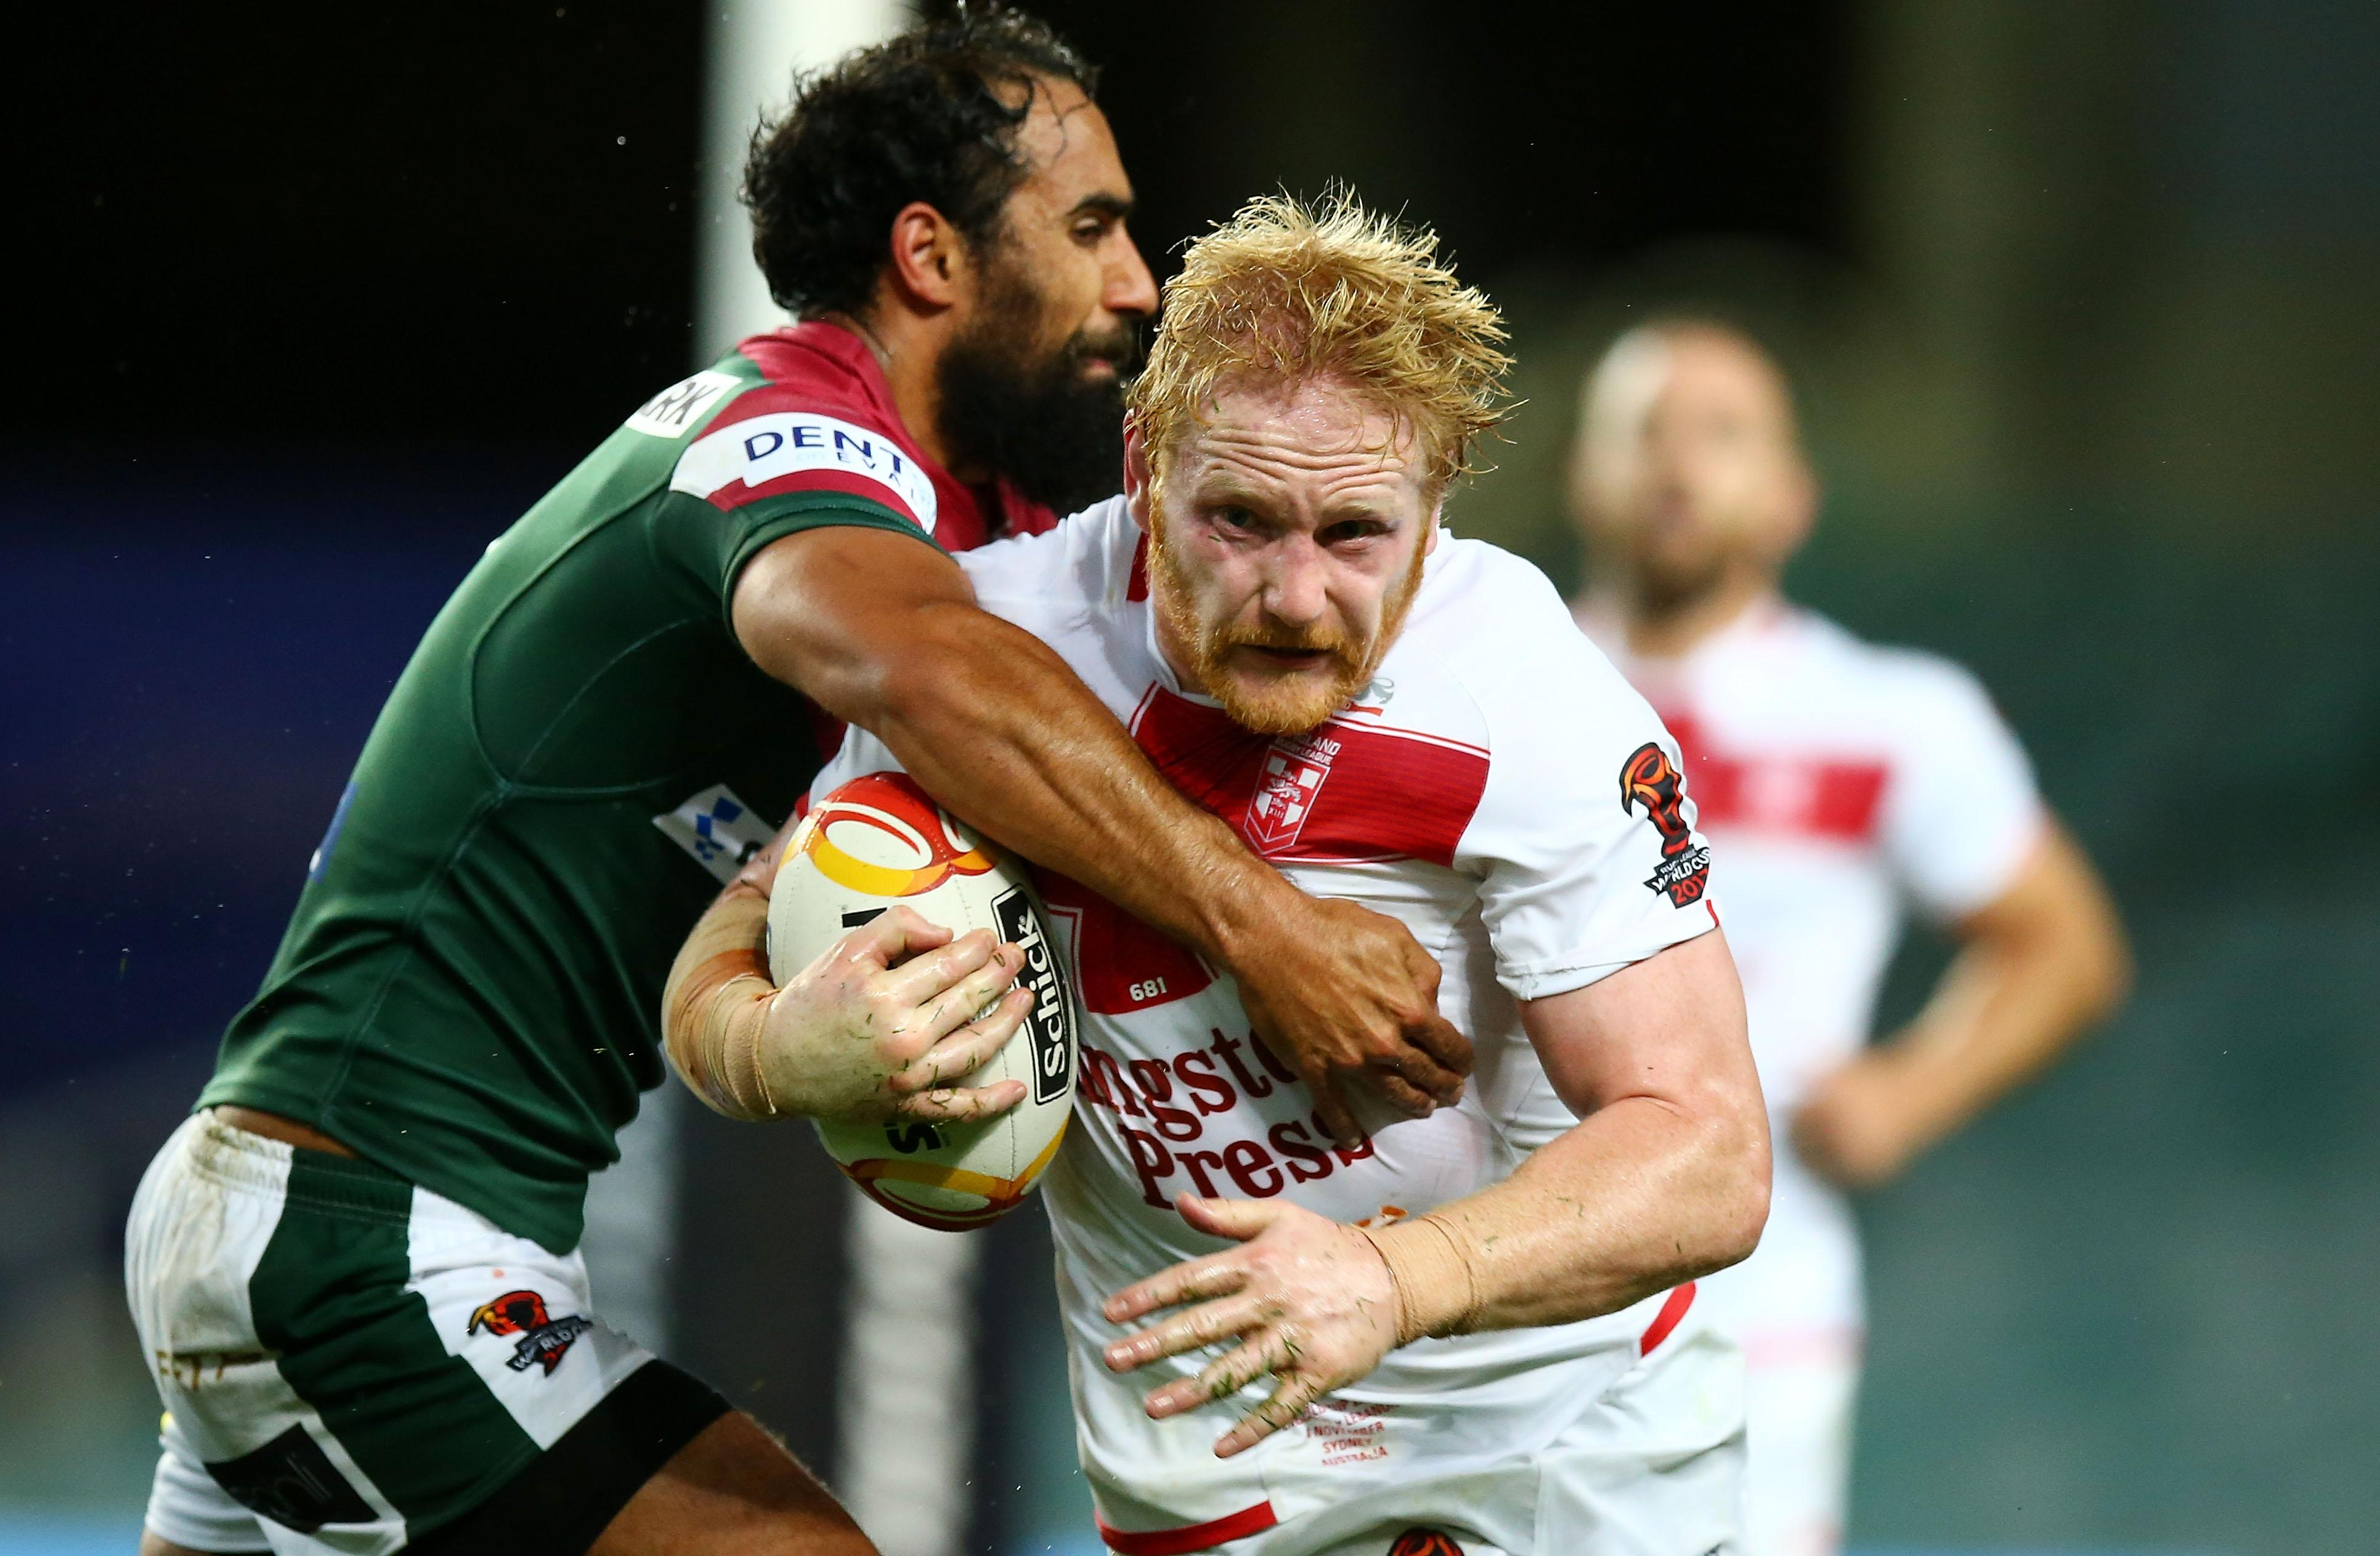 James Graham believes there is sometimes a price to pay for the good of international rugby league